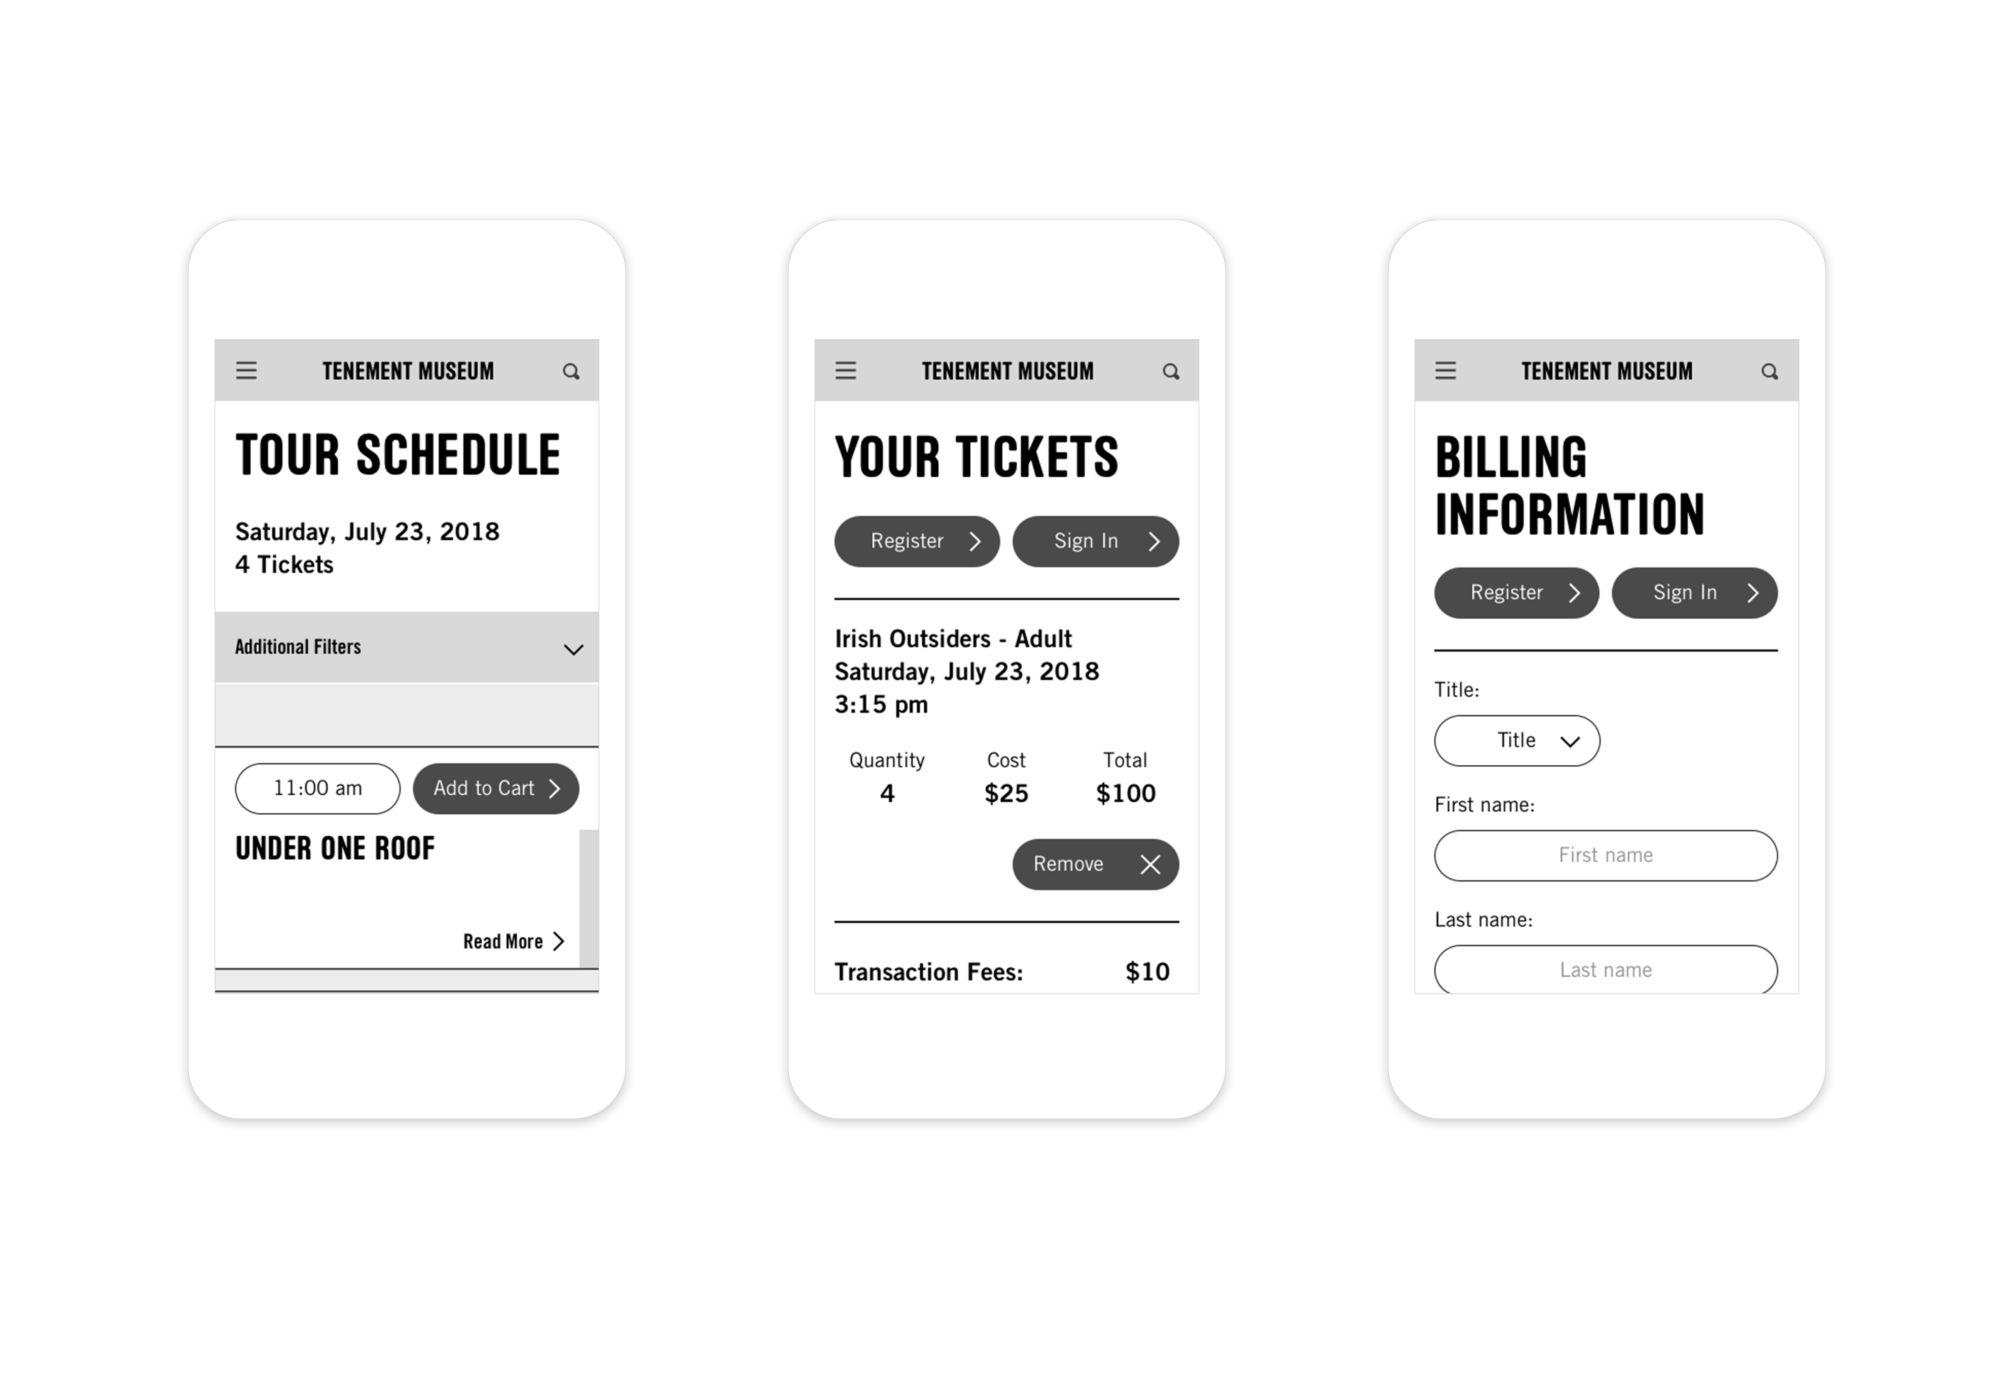 Mobile wireframes showing a portion of the Tenement Museum's mobile-friendly ticketing system.